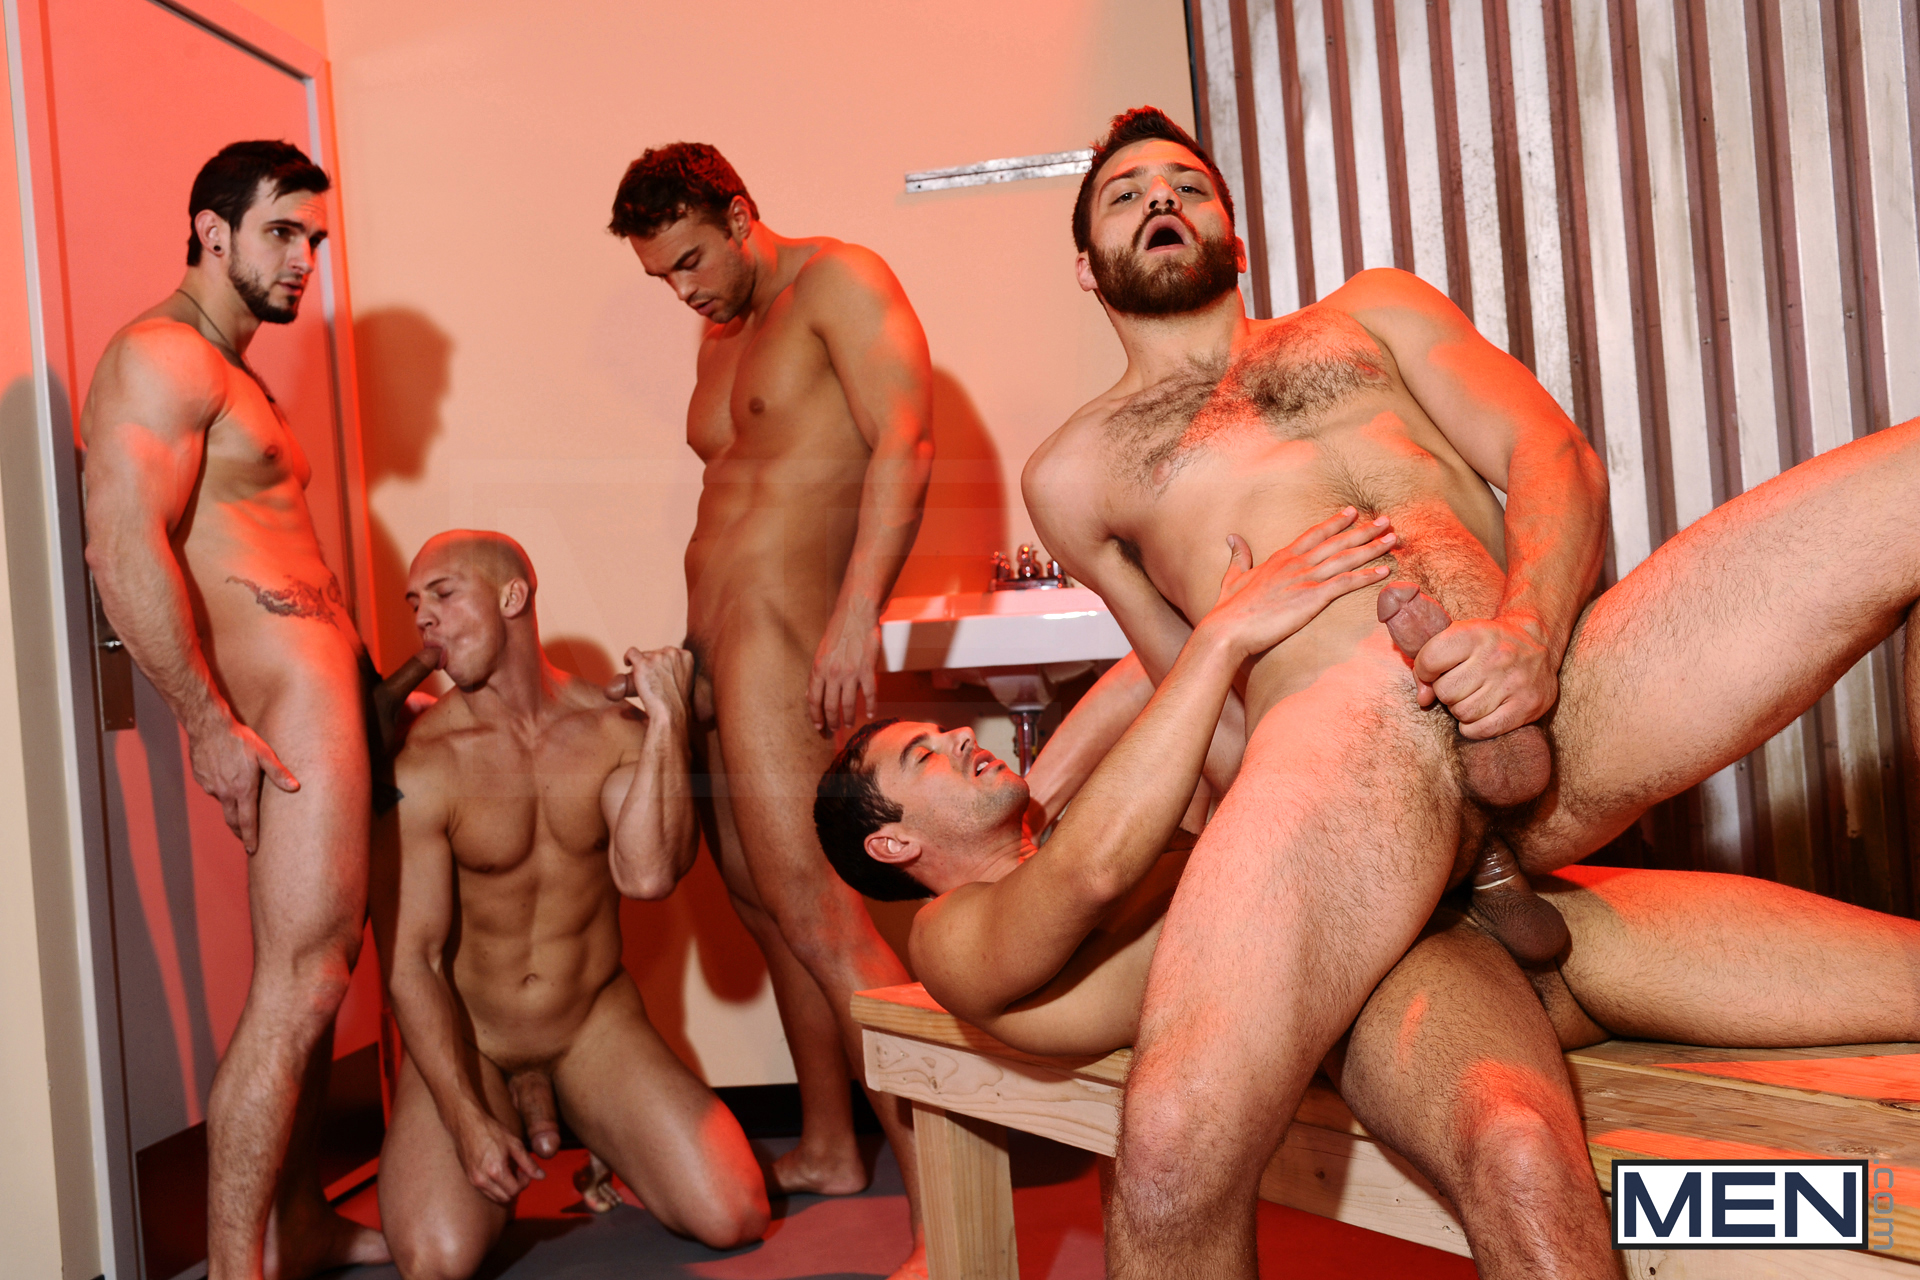 from Brecken gay locker room galleries